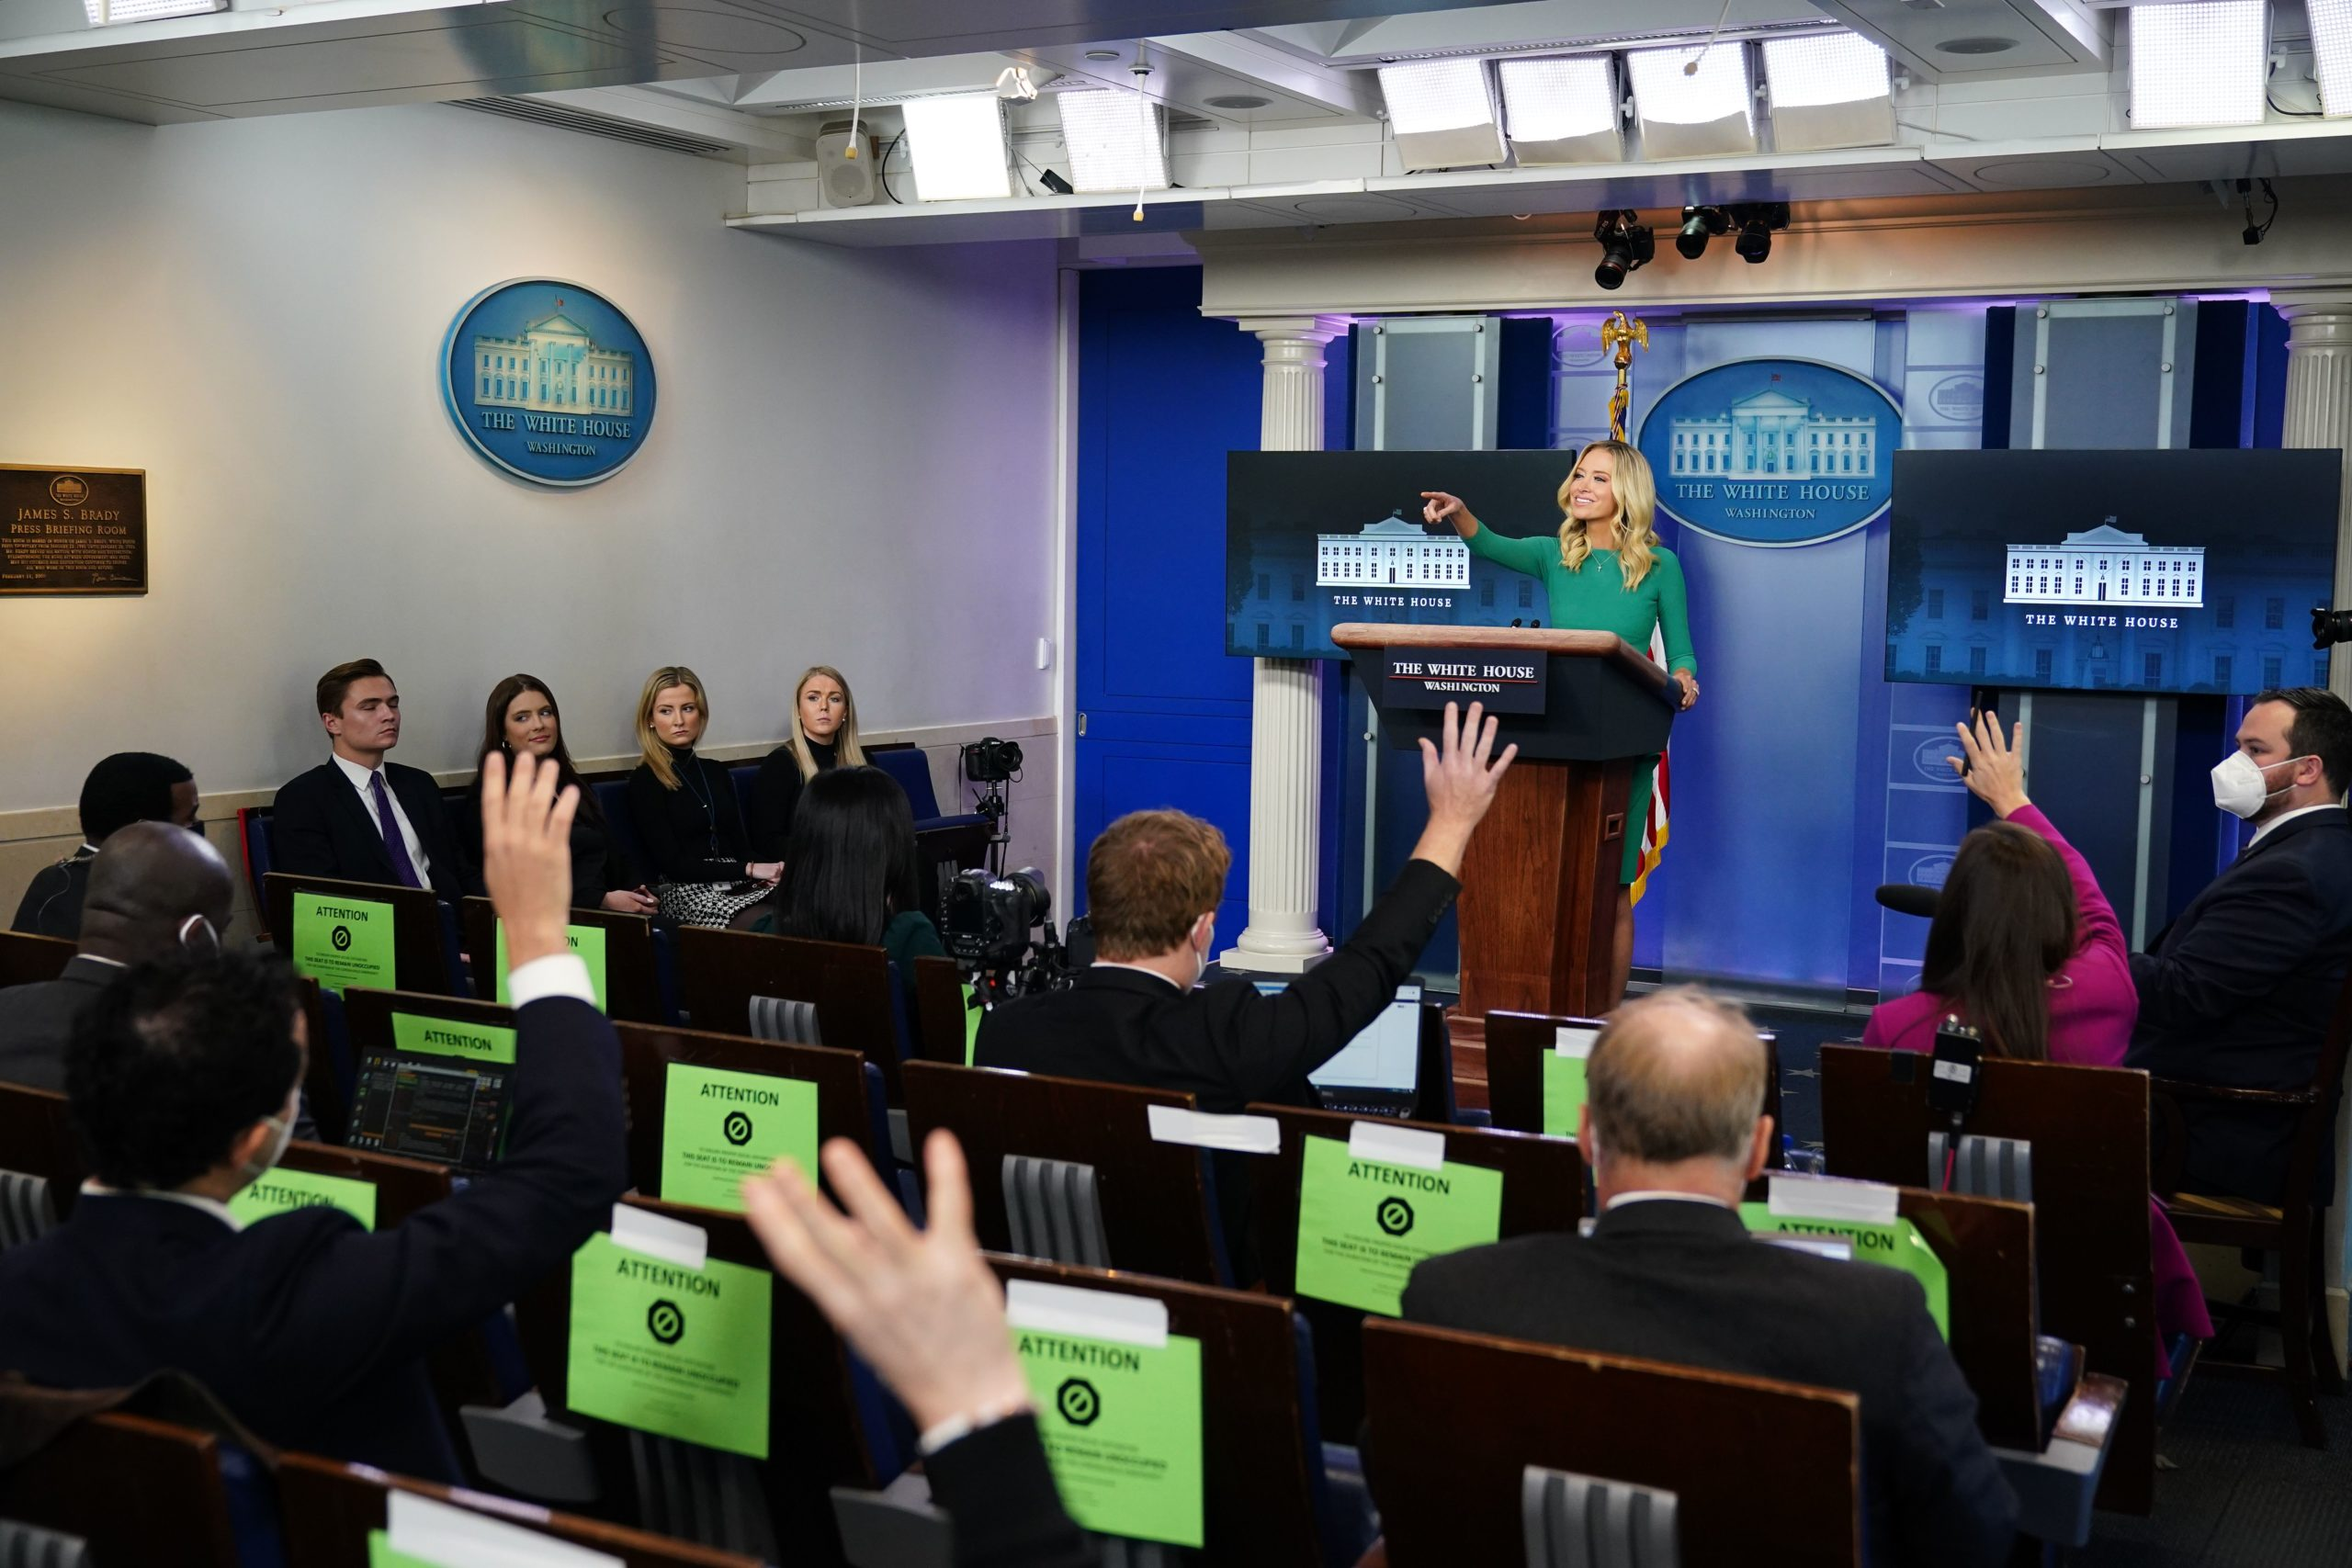 White House Press Secretary Kayleigh McEnany takes questions from the media during a press briefing on November 20, 2020, in the Brady Briefing Room of the White House in Washington, DC. (Photo by MANDEL NGAN/AFP via Getty Images)